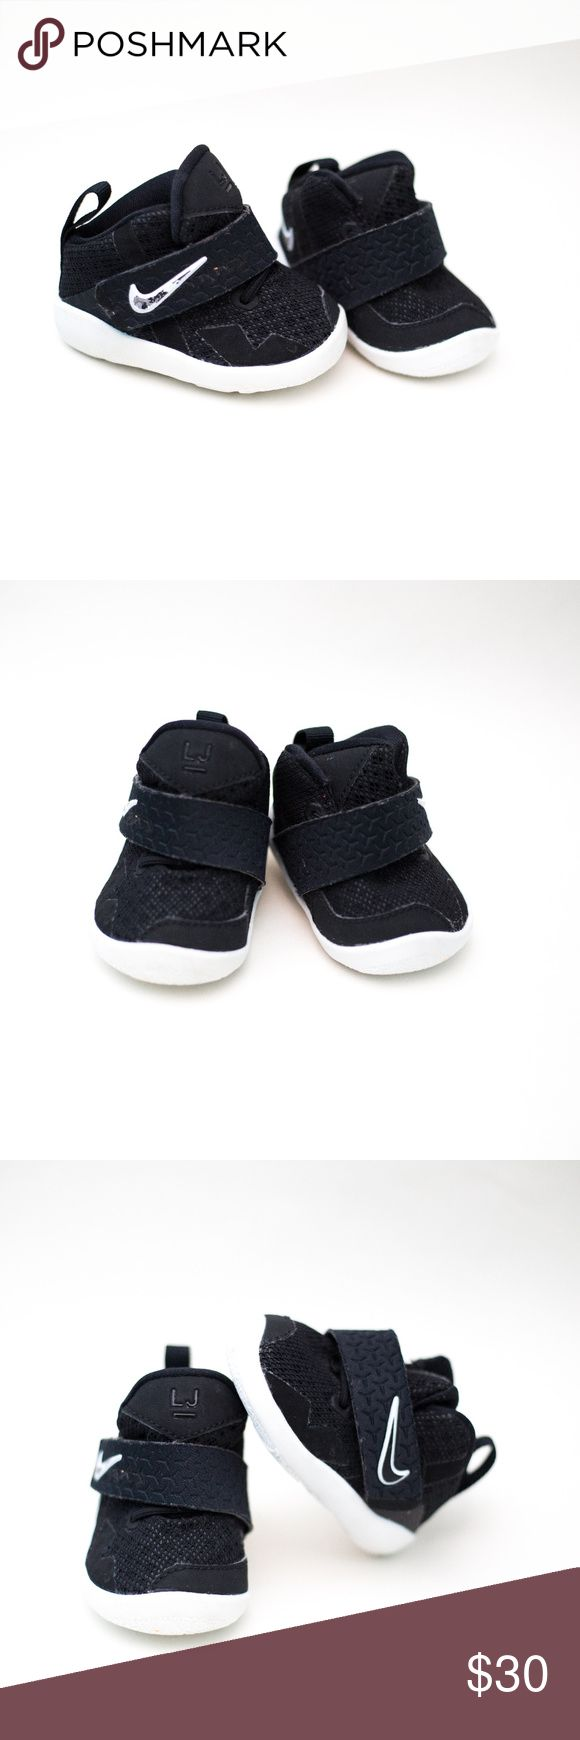 Infant Lebron James Black and white Lebron James sneakers Nike Shoes Sneakers